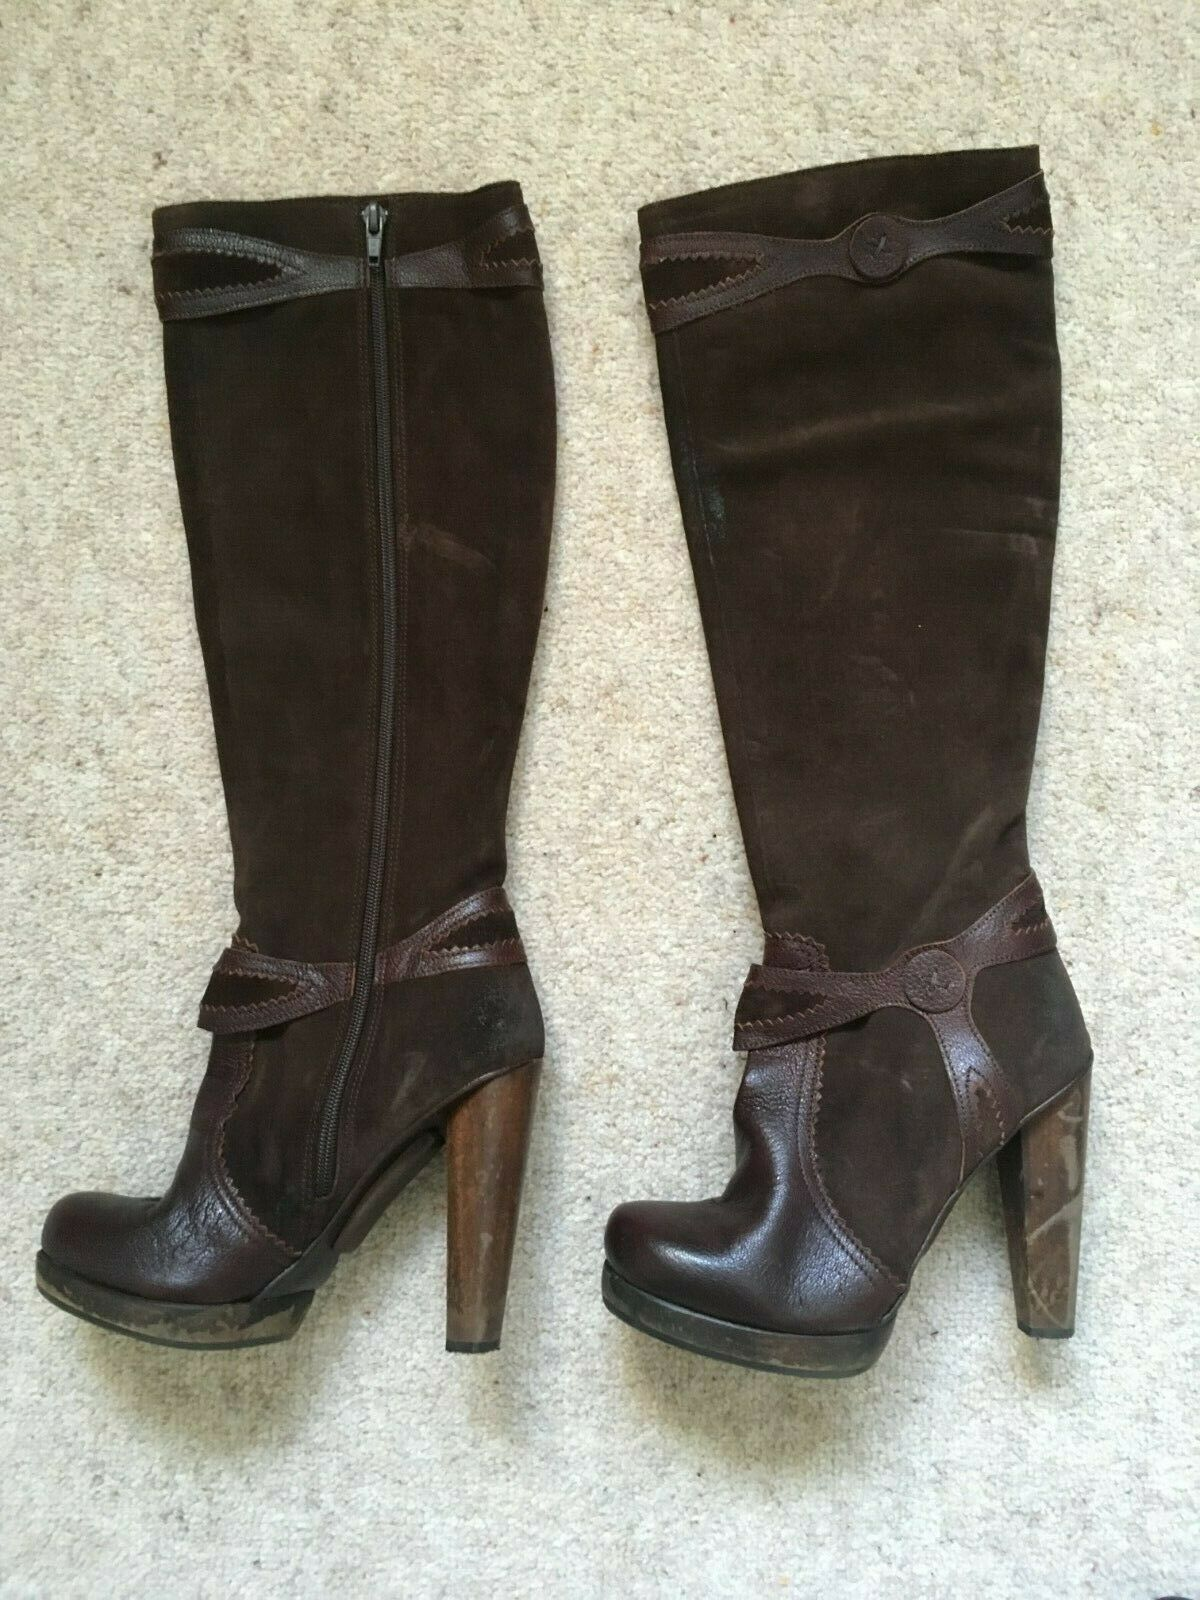 HARLOT BROWN LEATHER SUEDE HIGH HEELED BOOTS 4 (37) RARE